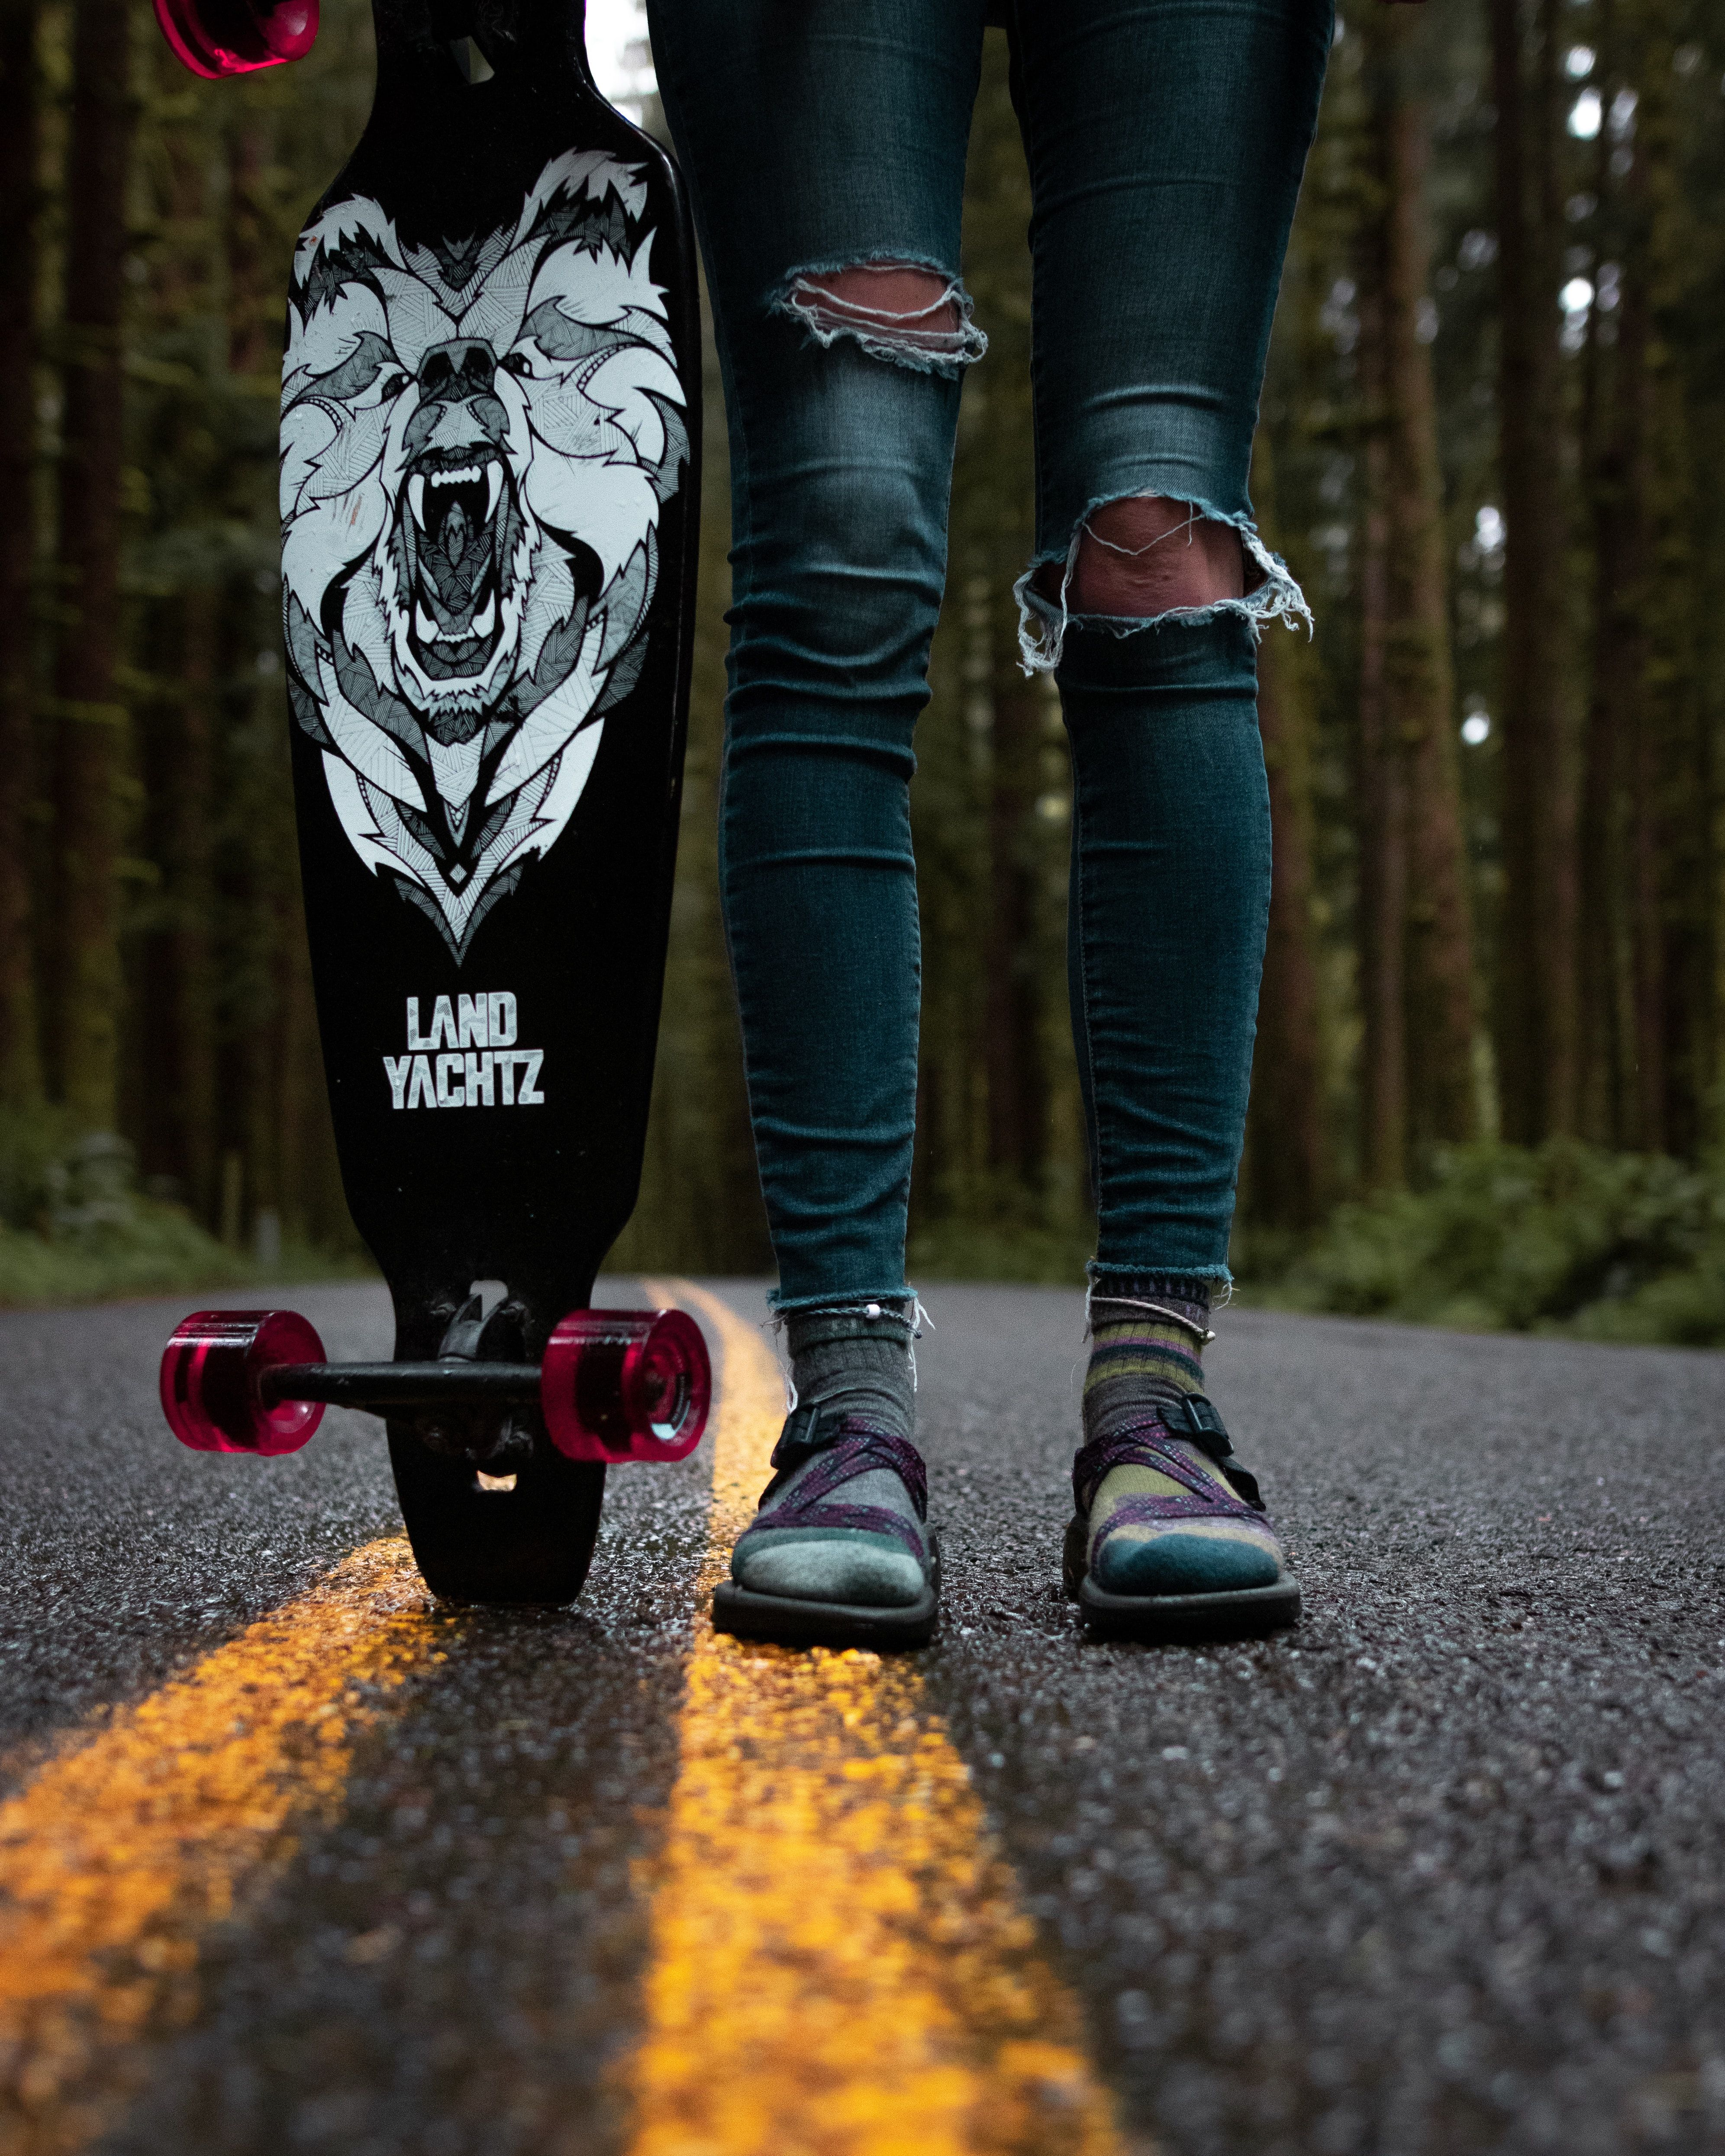 Apparel Clothing Pants Person Standing And Person Standing And Holding Black And White Skateboard Skateboard Skateboard Deck Art Skateboard Decks